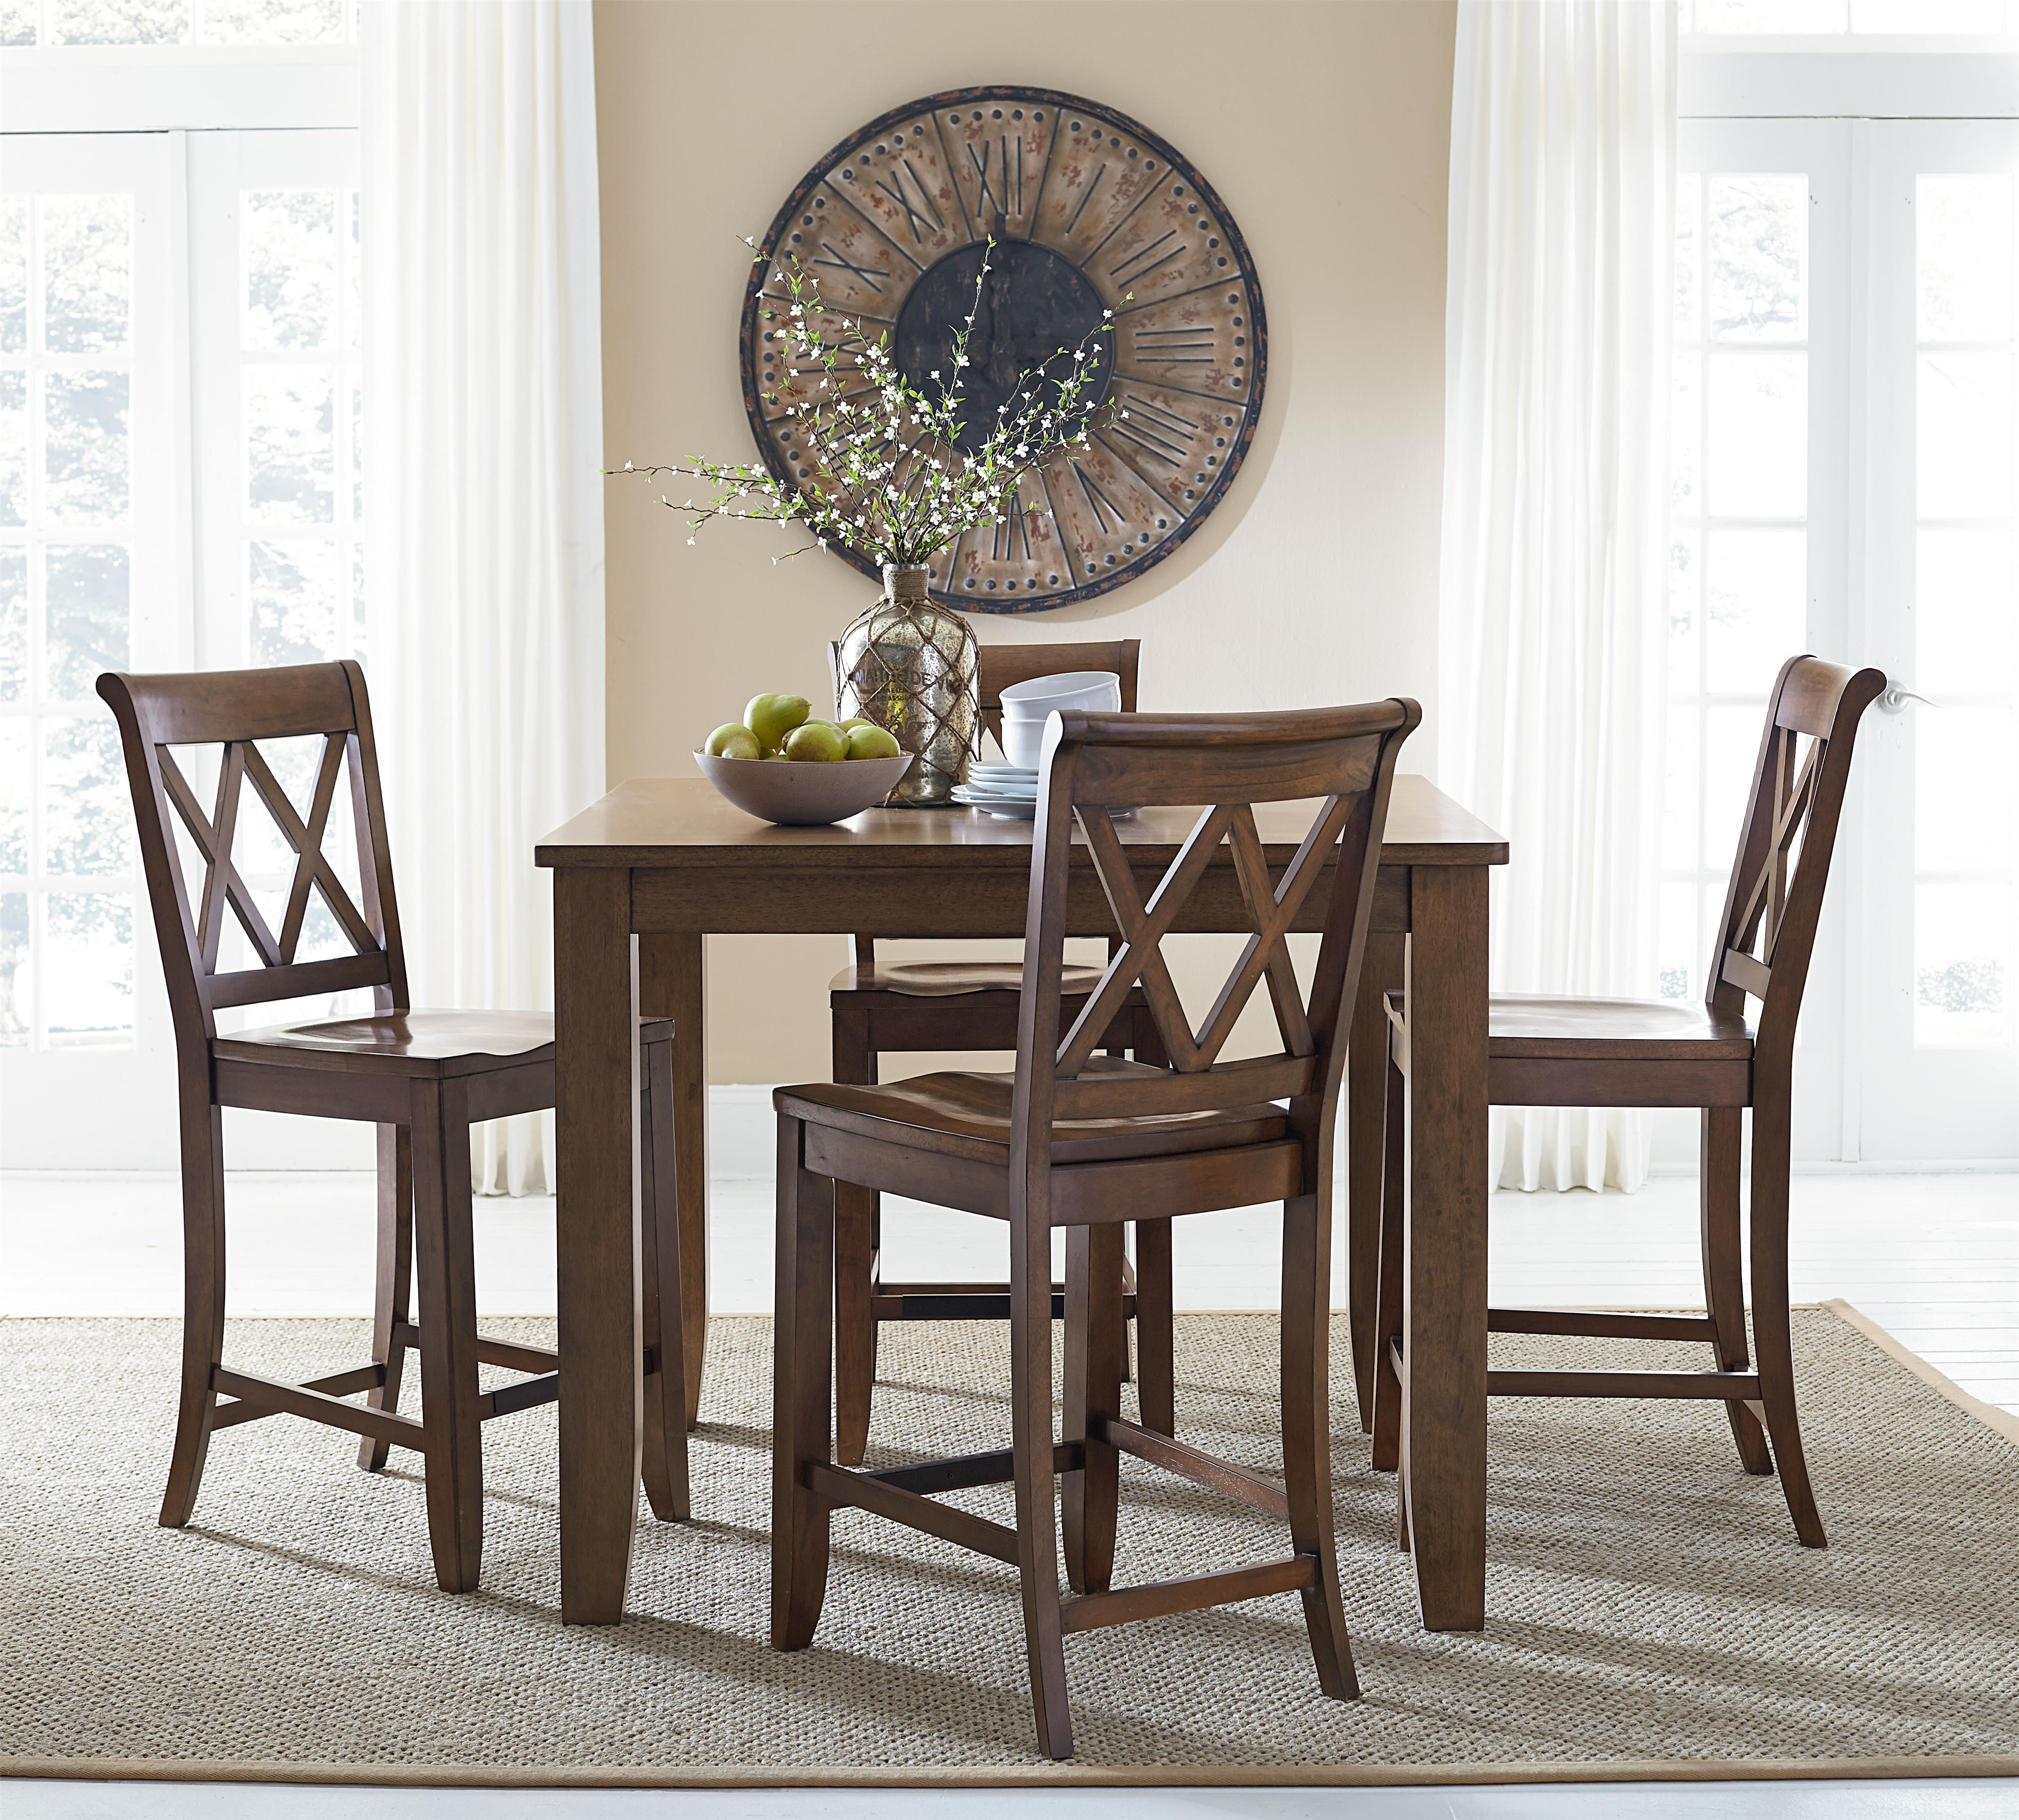 Standard Dining Room Table Size: Standard Furniture Vintage Counter Height Dining Set With